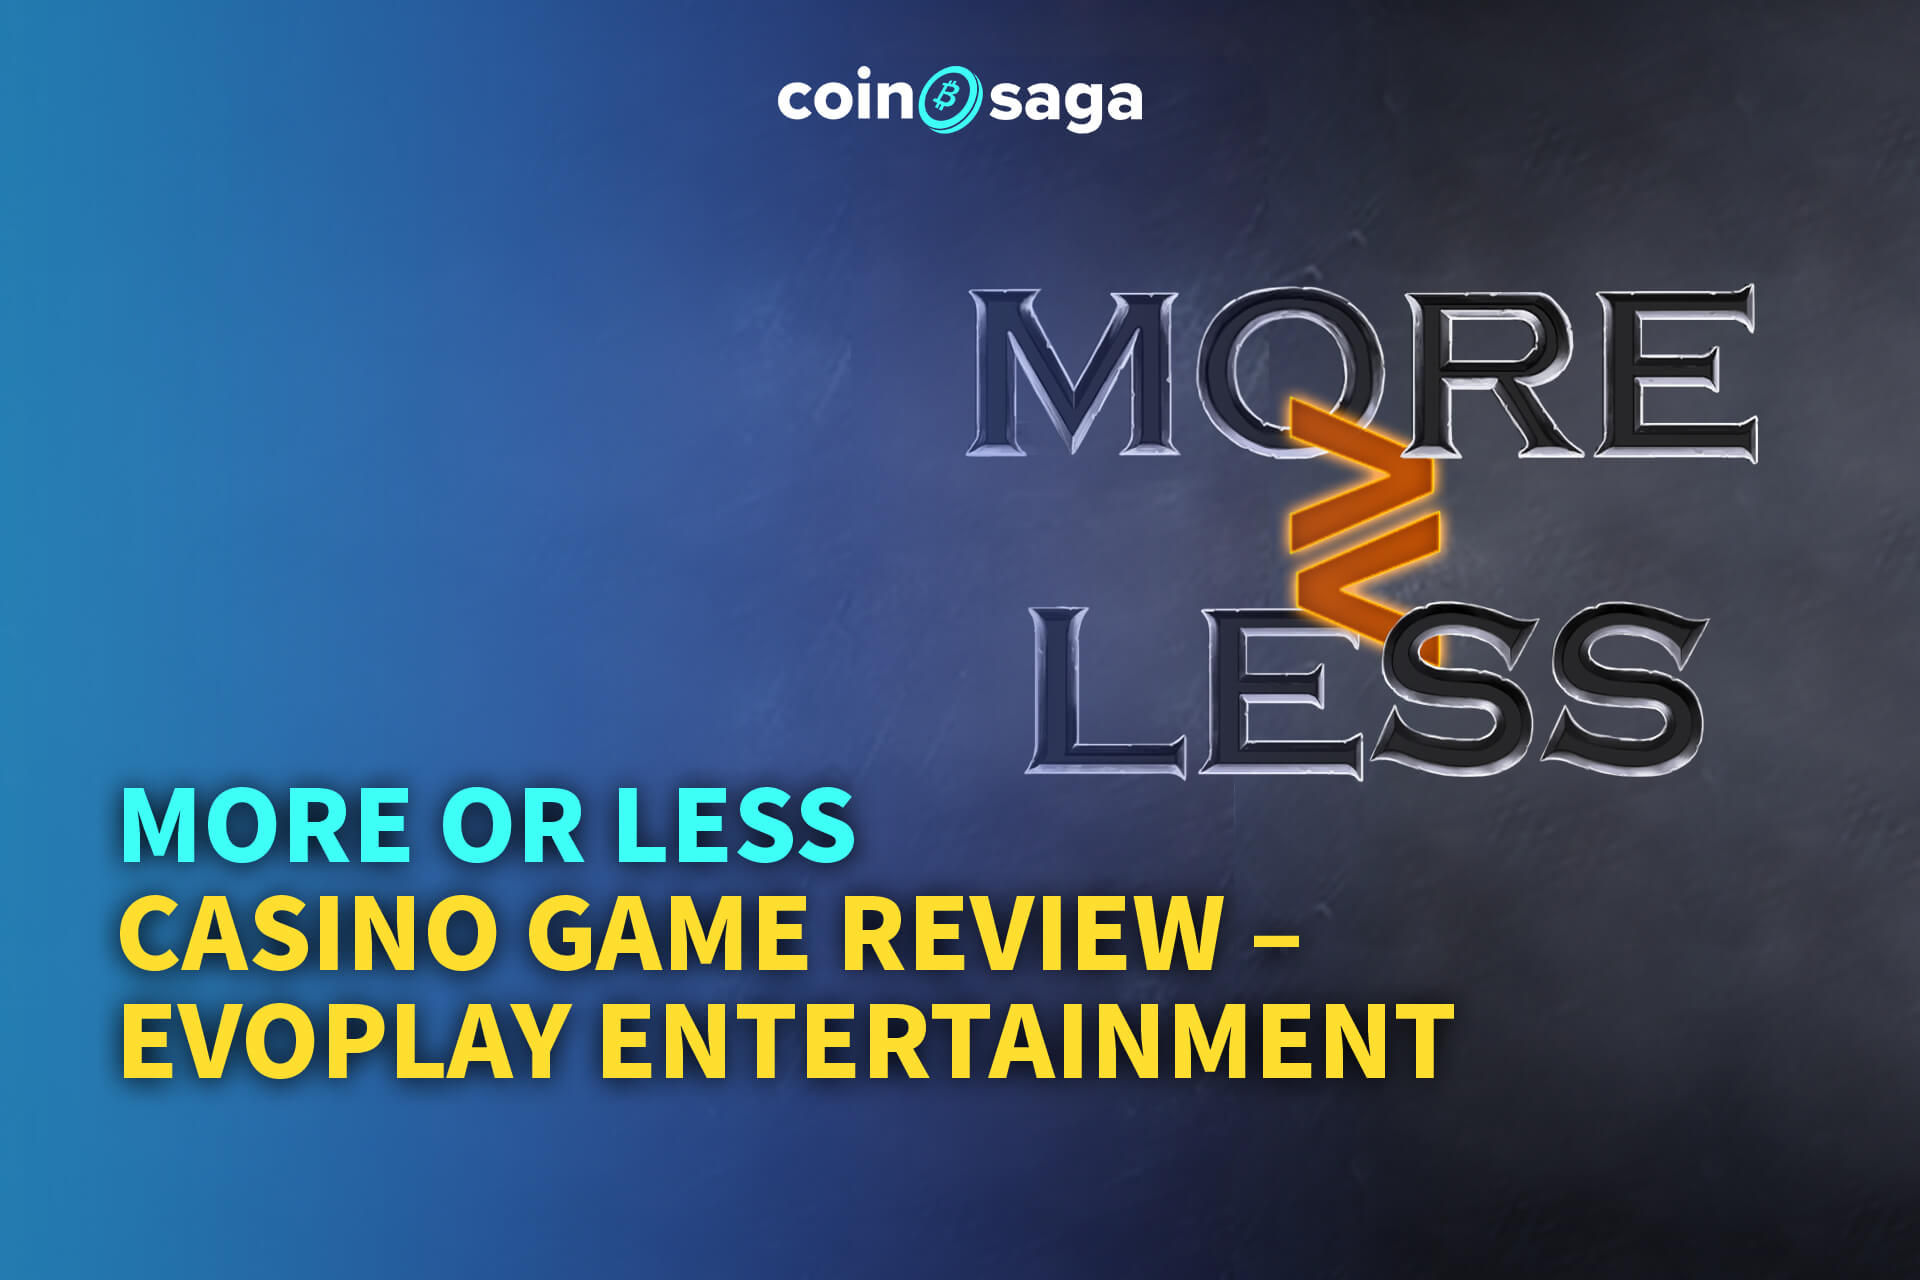 more or less casino game from evoplay